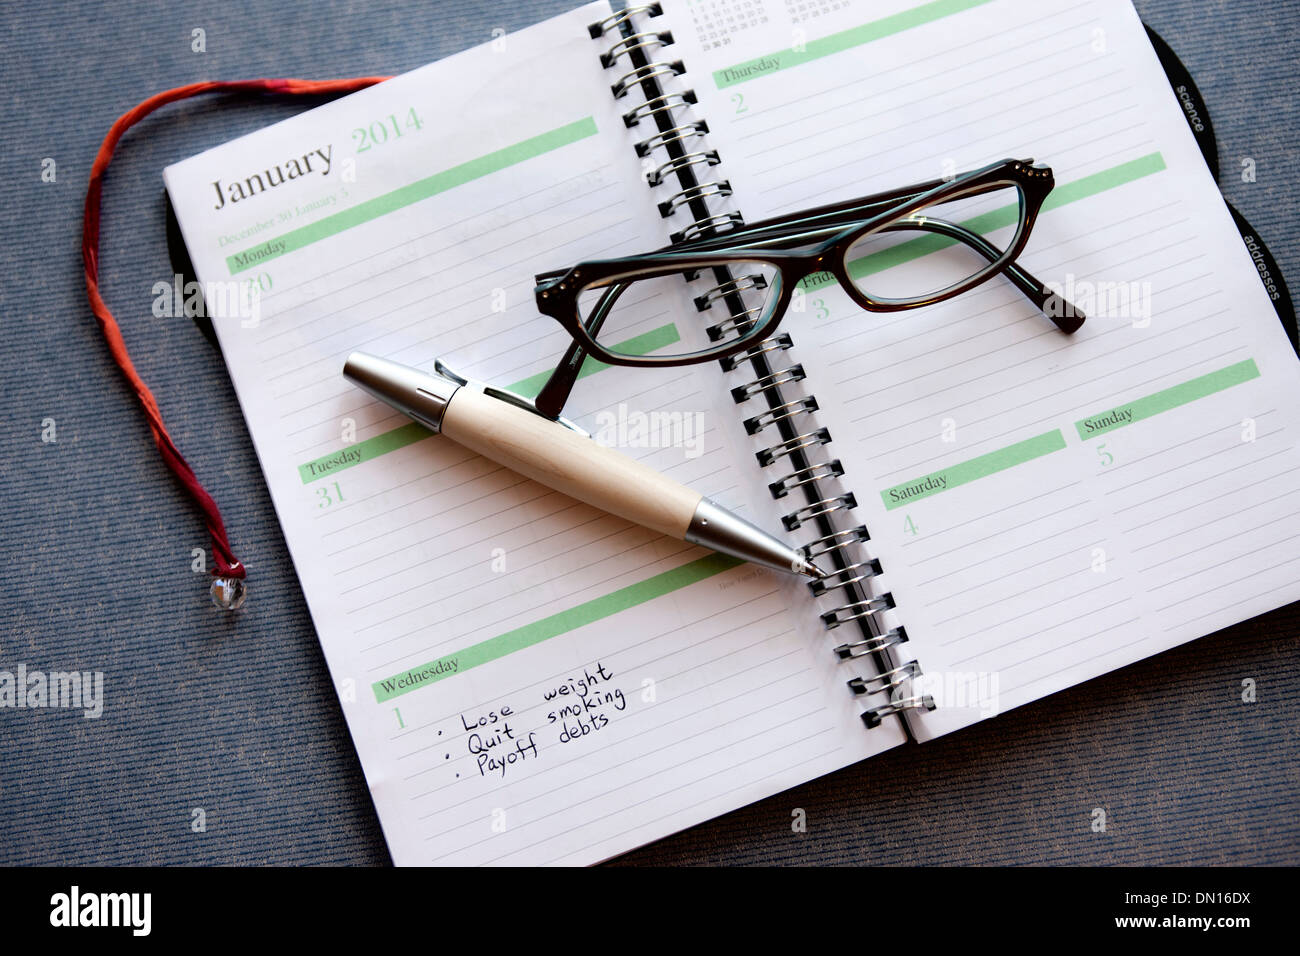 Making a resolution. - Stock Image